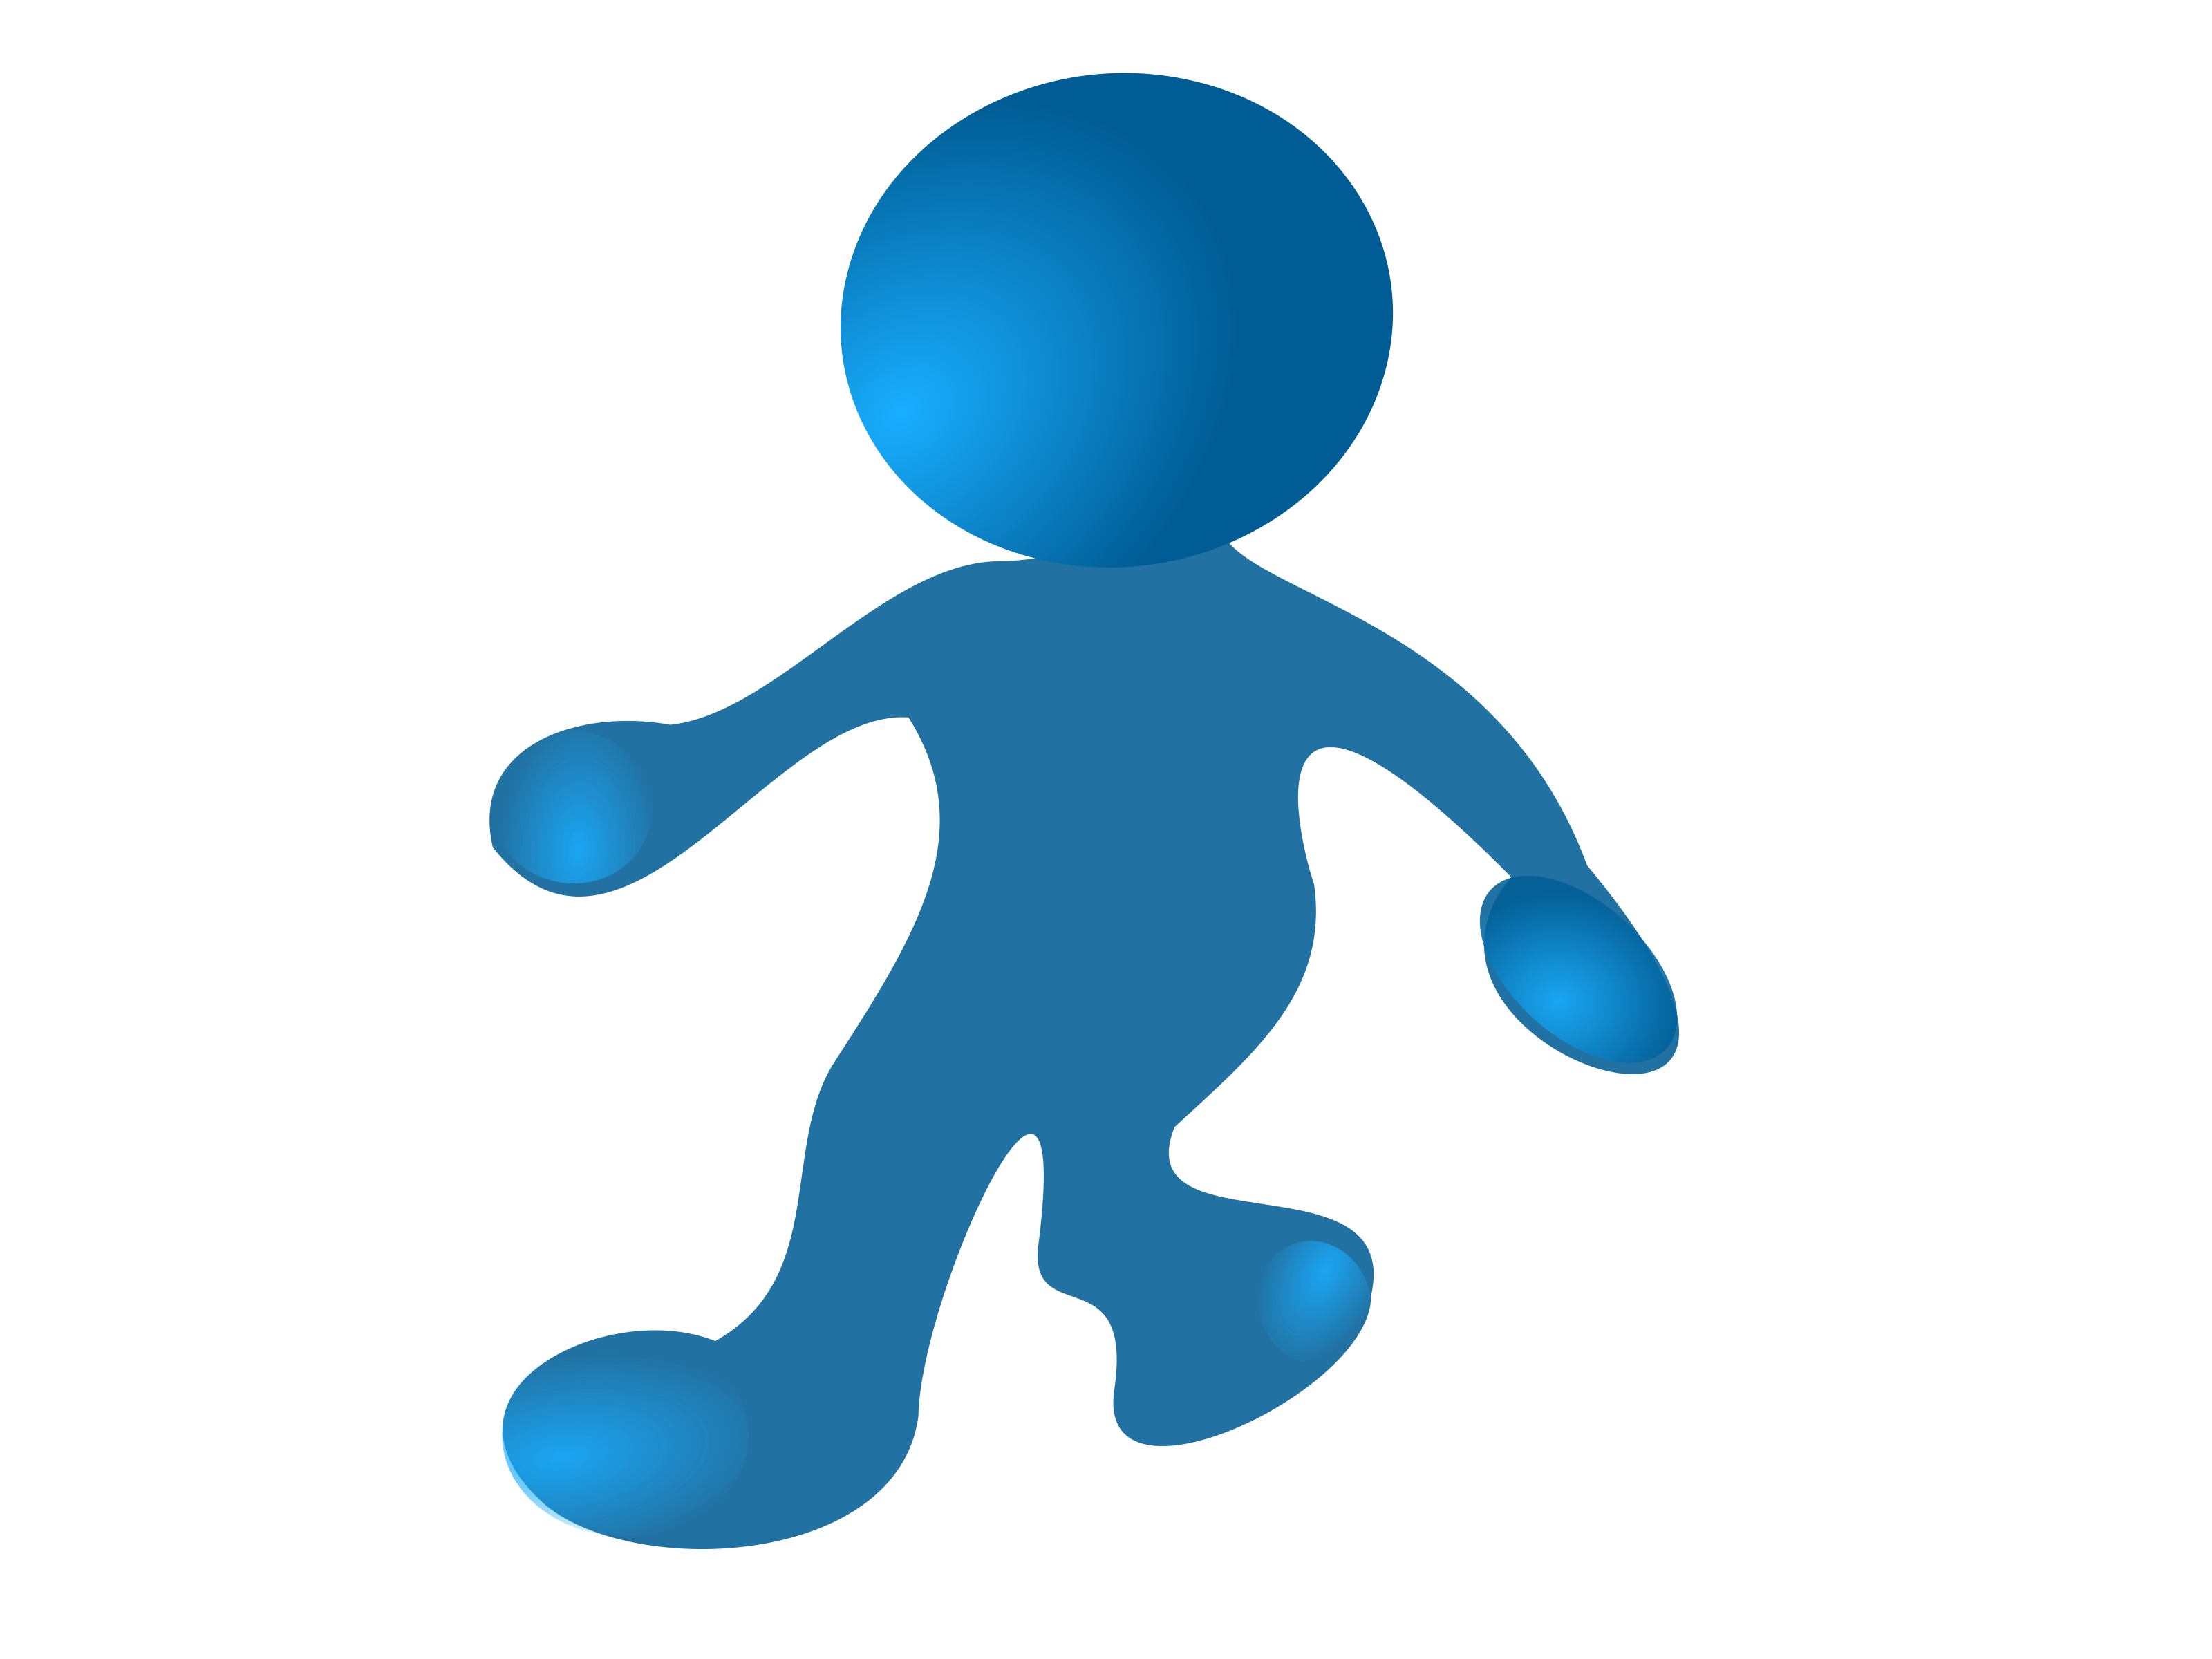 Human clipart animated, Human animated Transparent FREE for download.